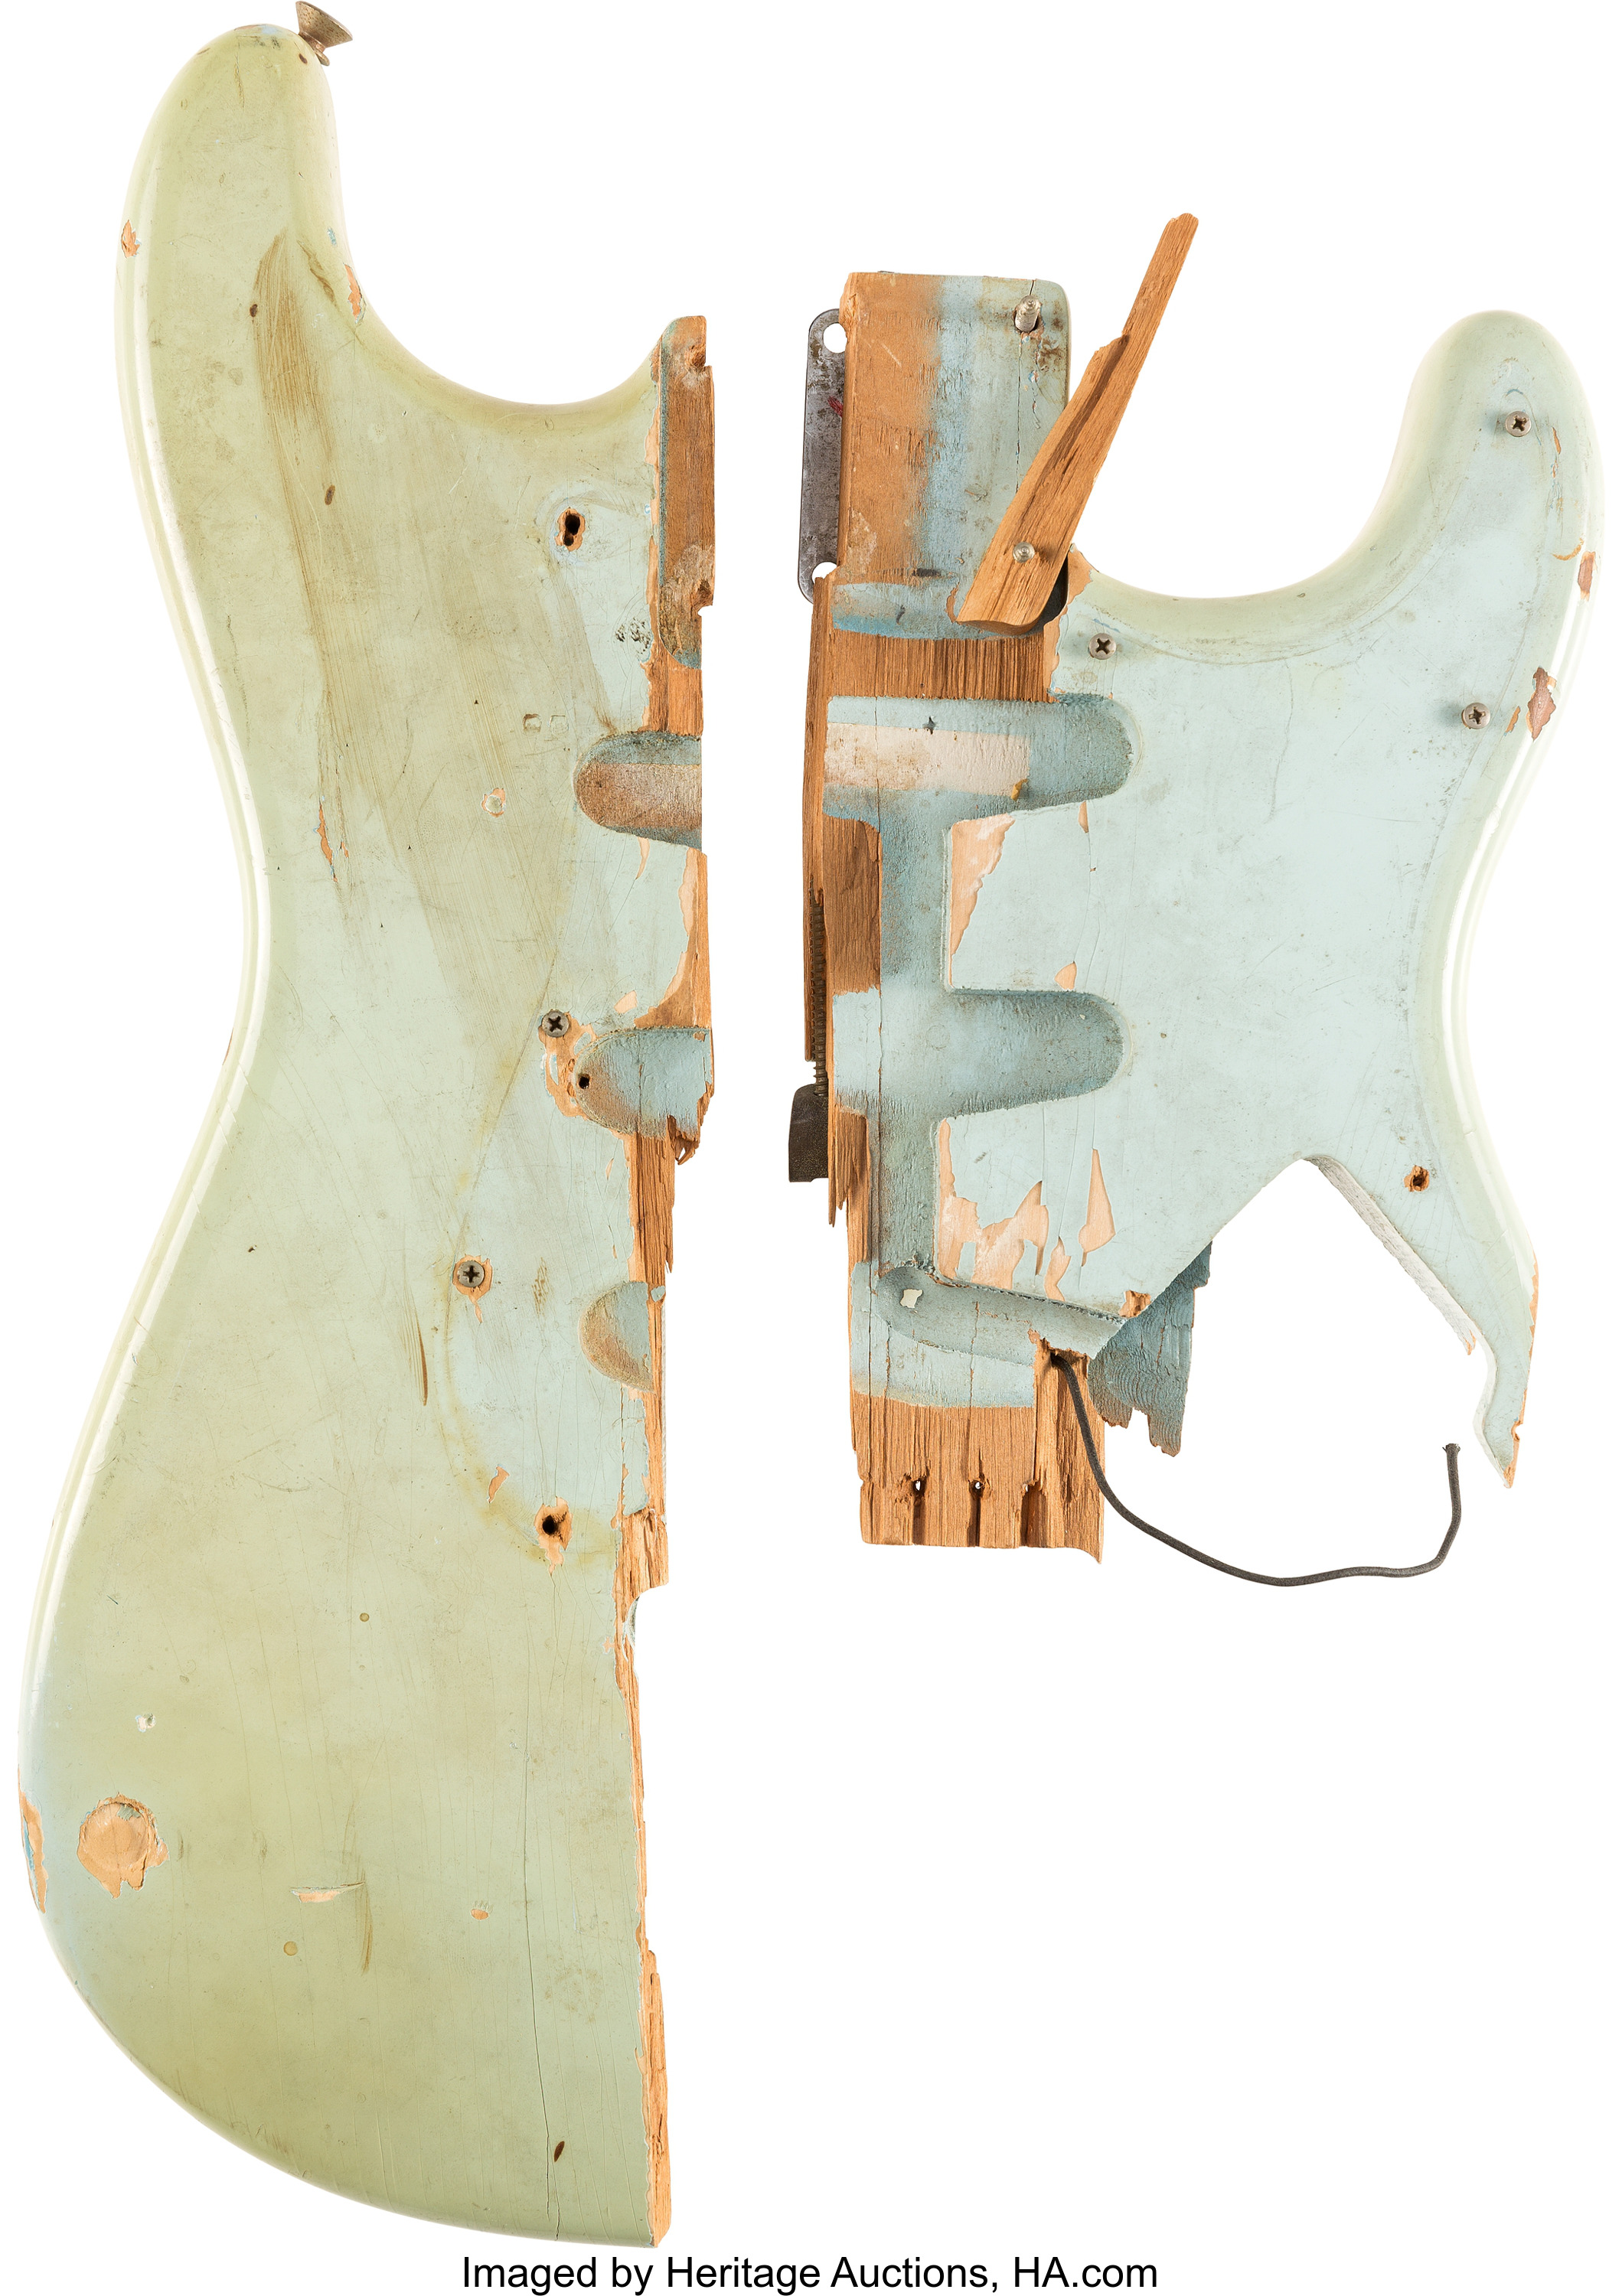 "A 1964 sonic blue Fender Stratocaster ""smasher,""--a guitar played on stage and smashed by Pete Townshend of The Who--on December 1, 1967 at Long Island Arena in Commack, New York."